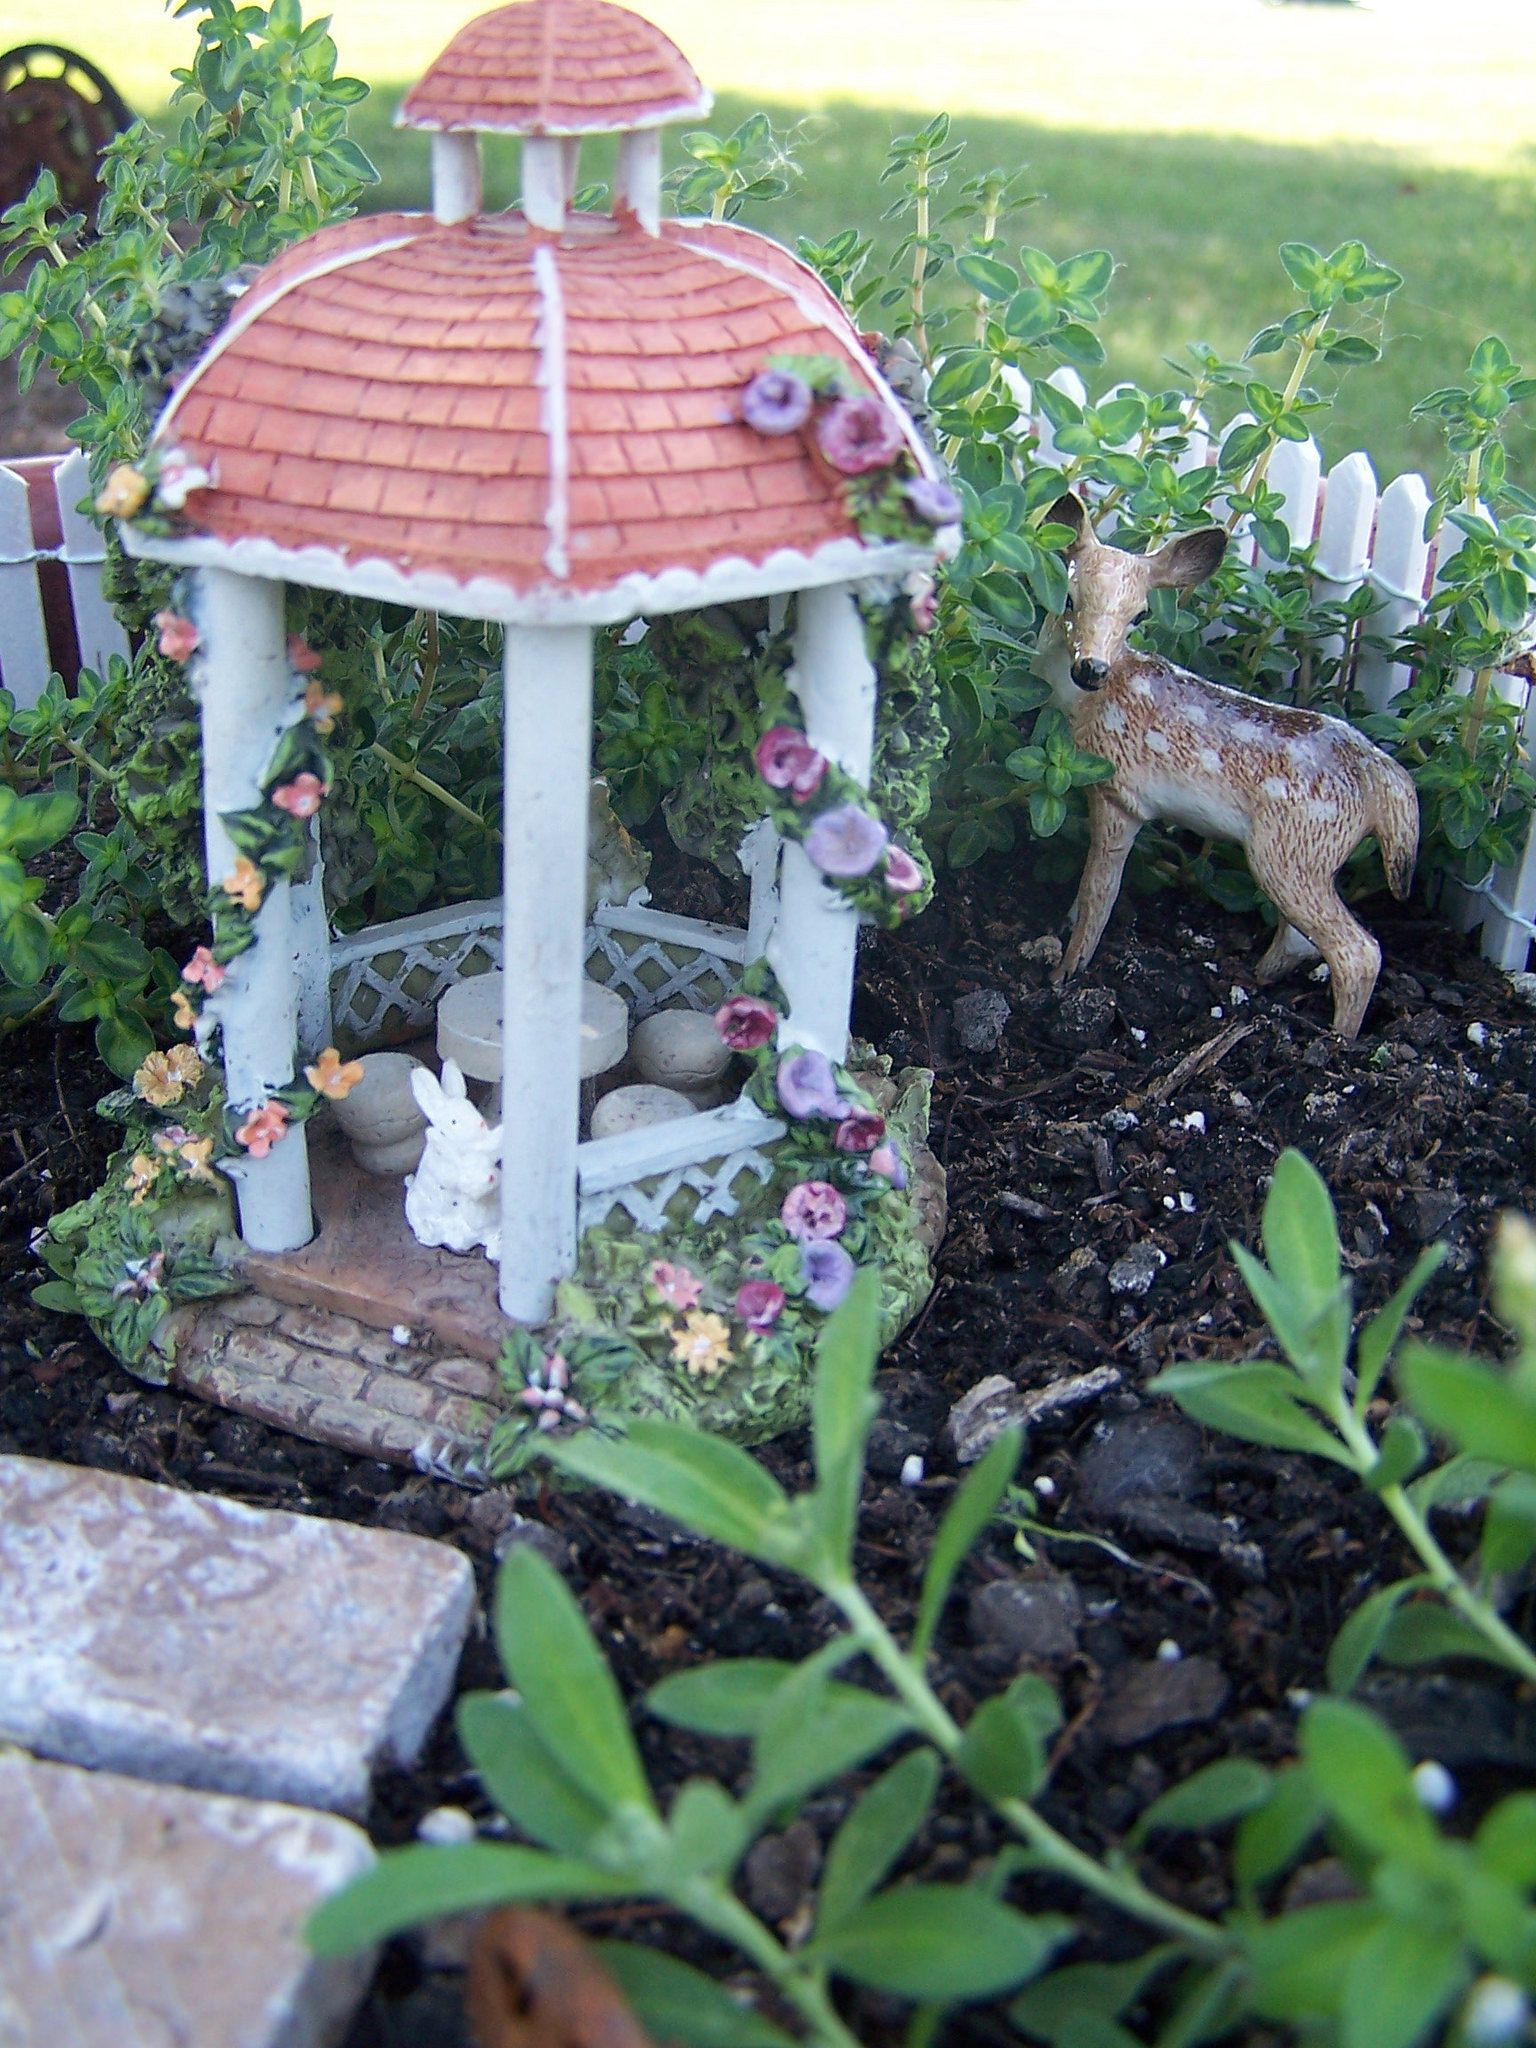 Mini Gardens - Whimsical, Fairy